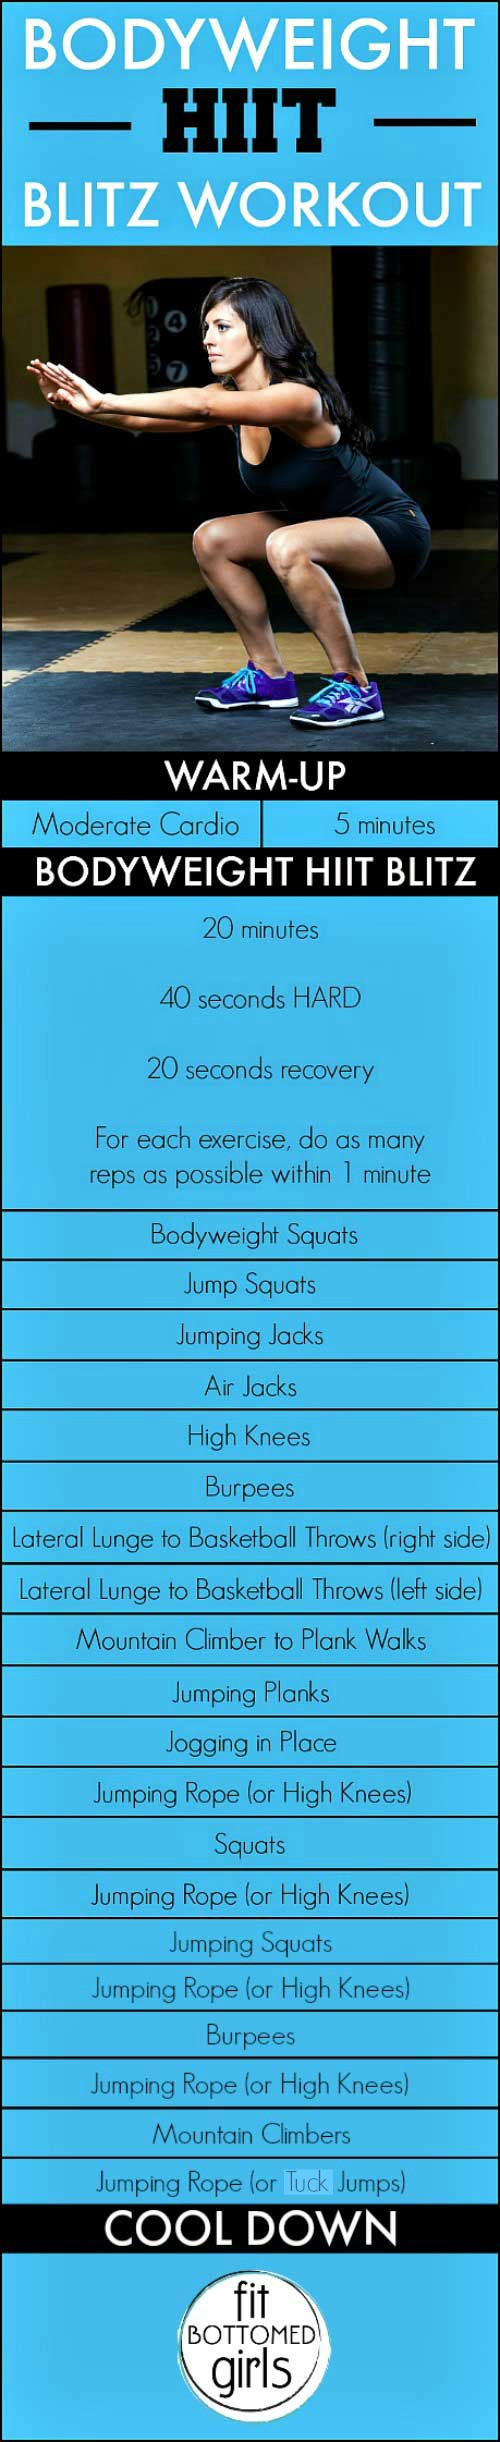 bodyweight-HIIT-blitz-workout-5851-2